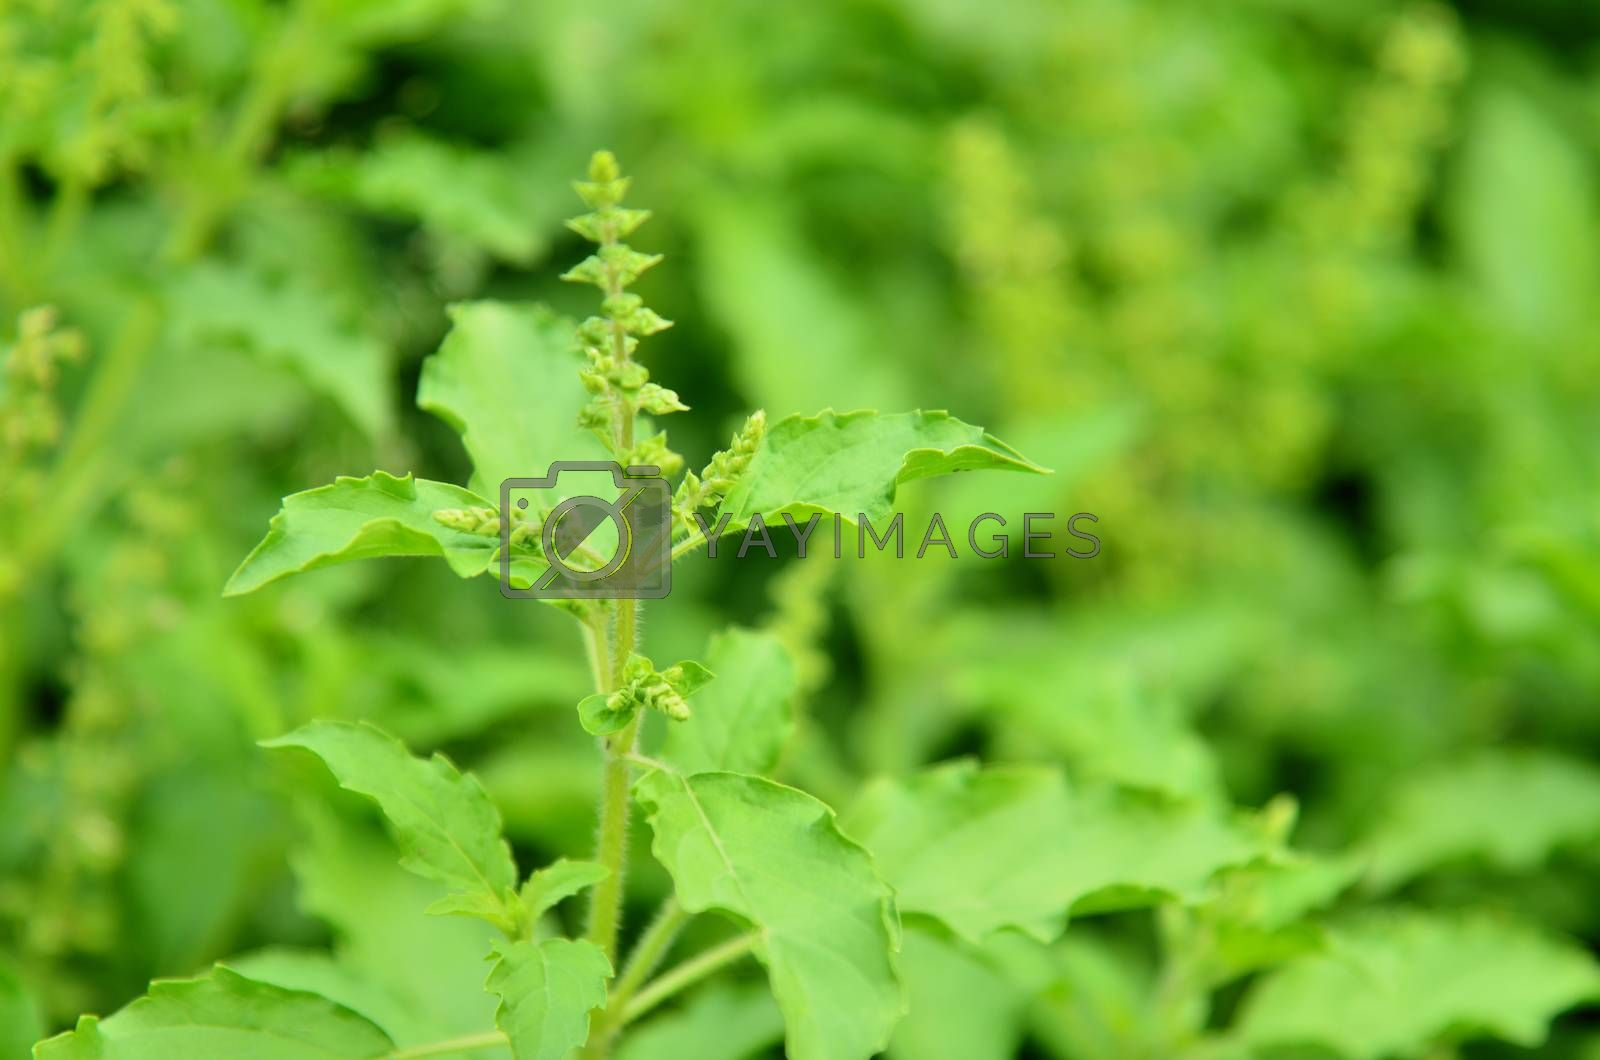 Royalty free image of Ocimum sanctum in the garden by jengit